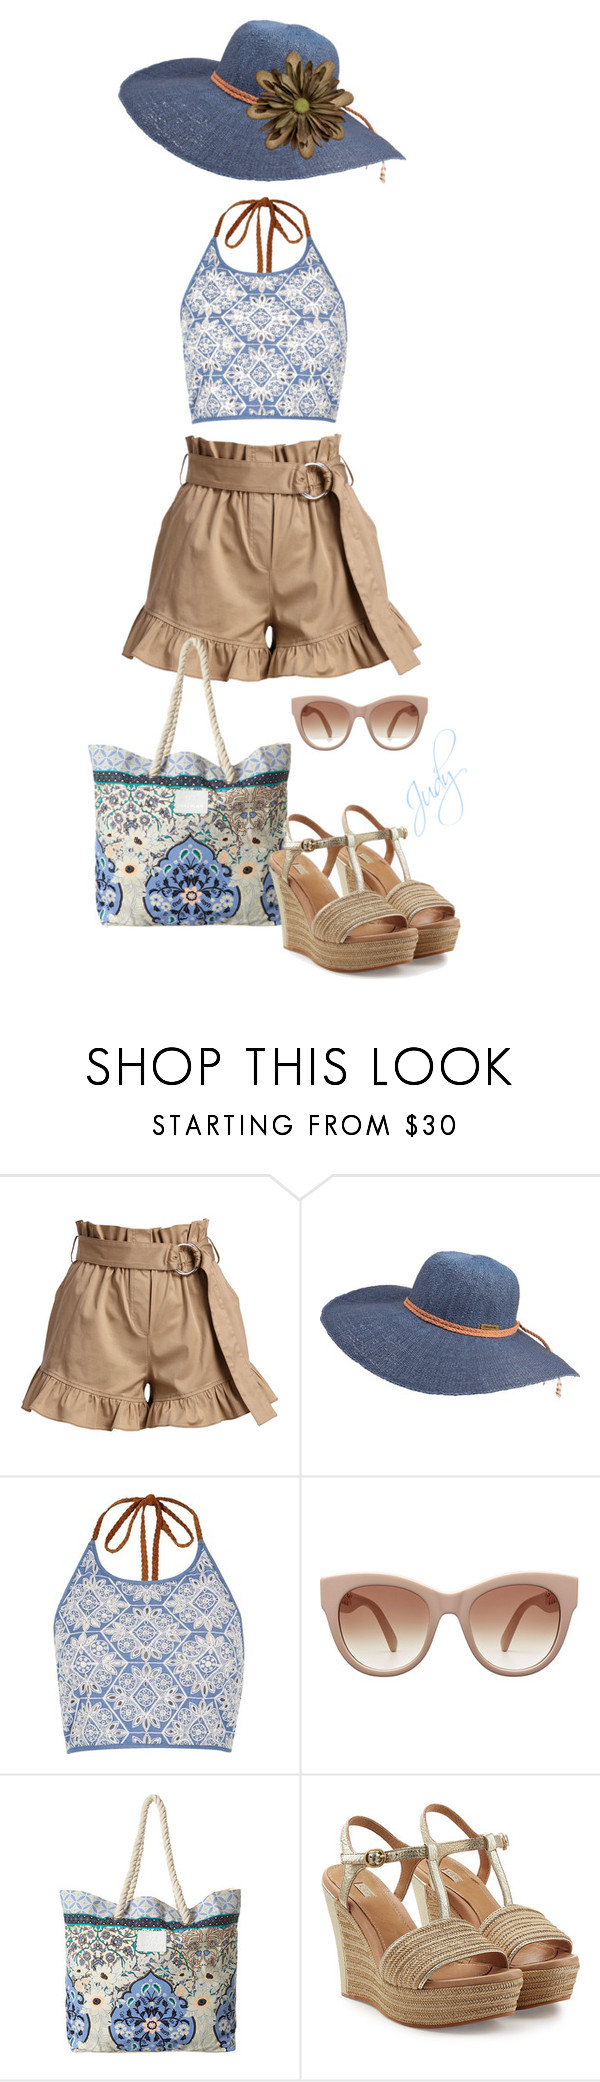 """Blue & Brown and BEACH! (Love those shorts!)"" by judymjohnson ❤ liked on Polyvore featuring Cinq à Sept, Billabong, River Island and UGG Australia"